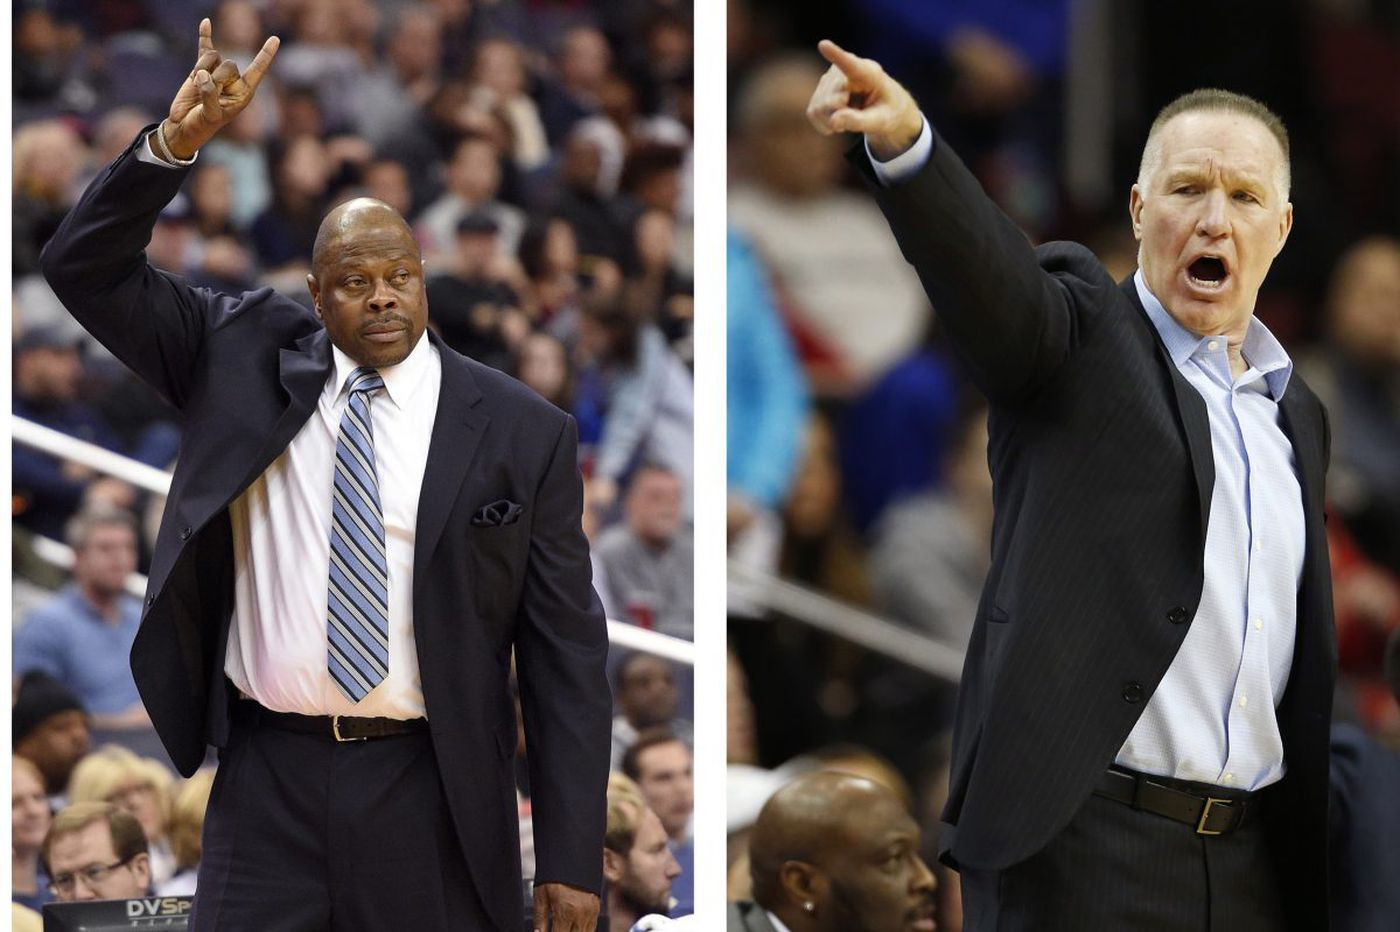 Patrick Ewing, Chris Mullin renew rivalry as Big East coaches